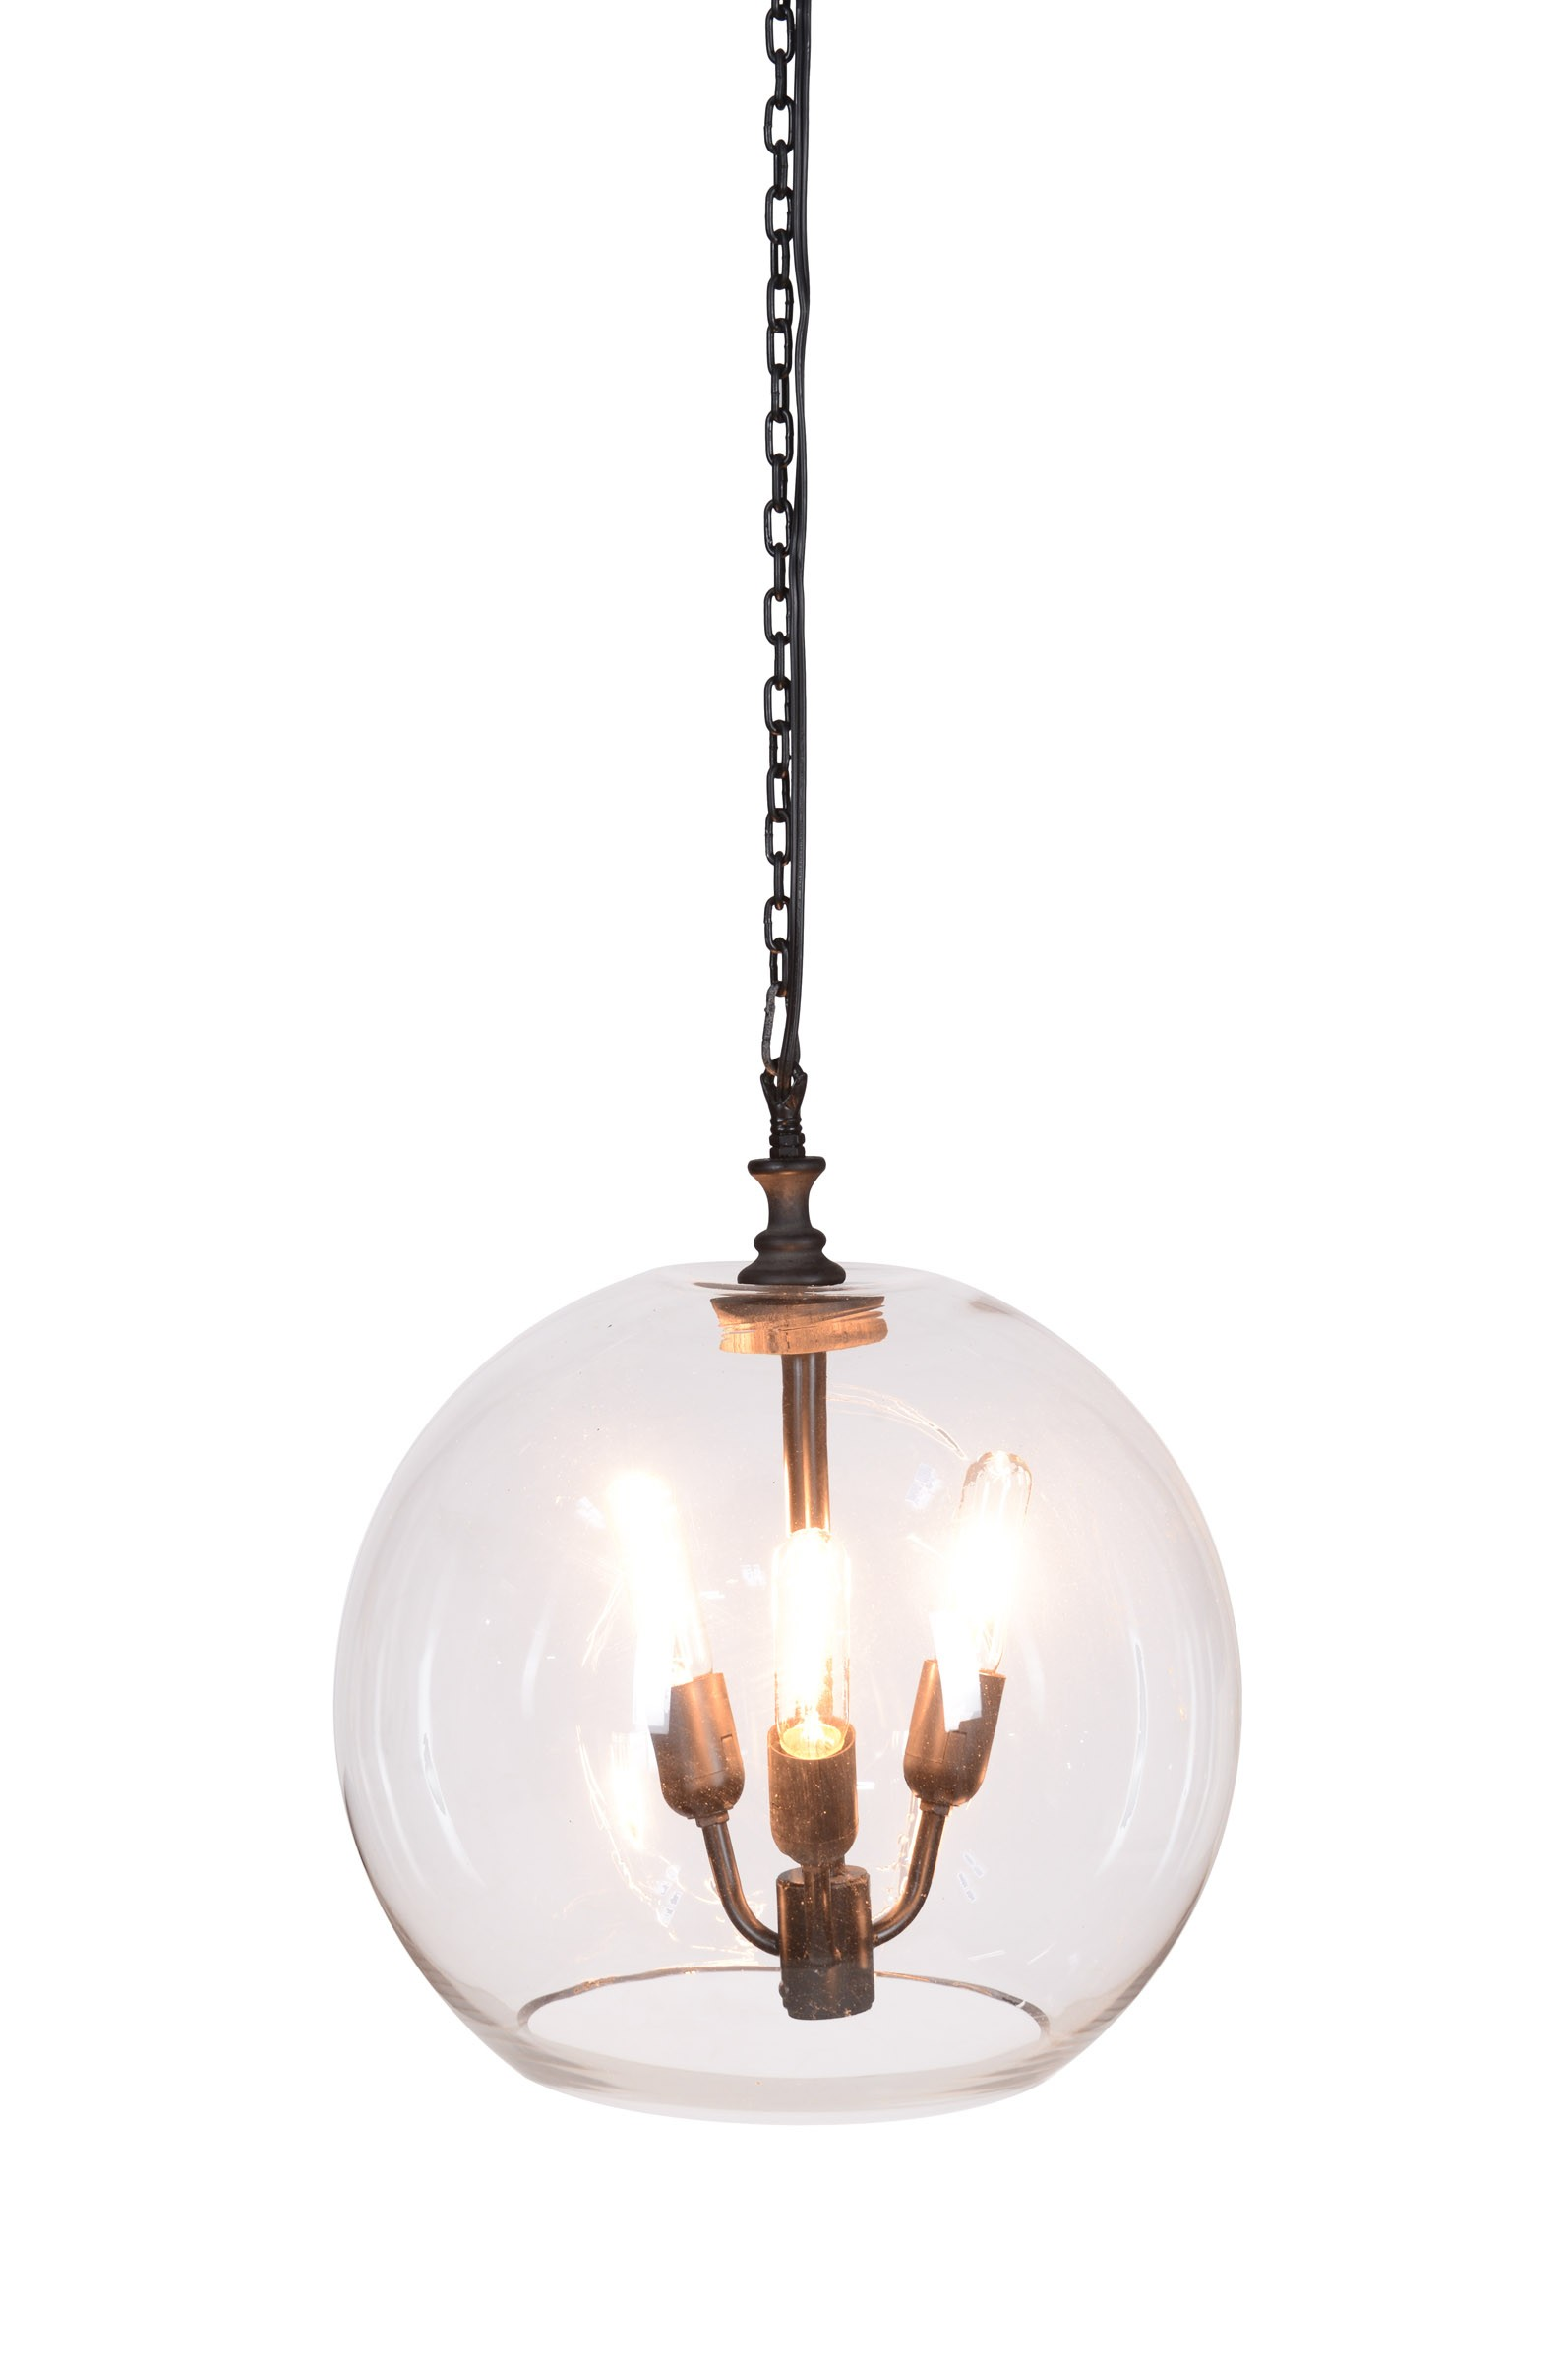 ostend glass ball chandelier Tuvalu Coastal Home Furnishings – Ball Chandelier